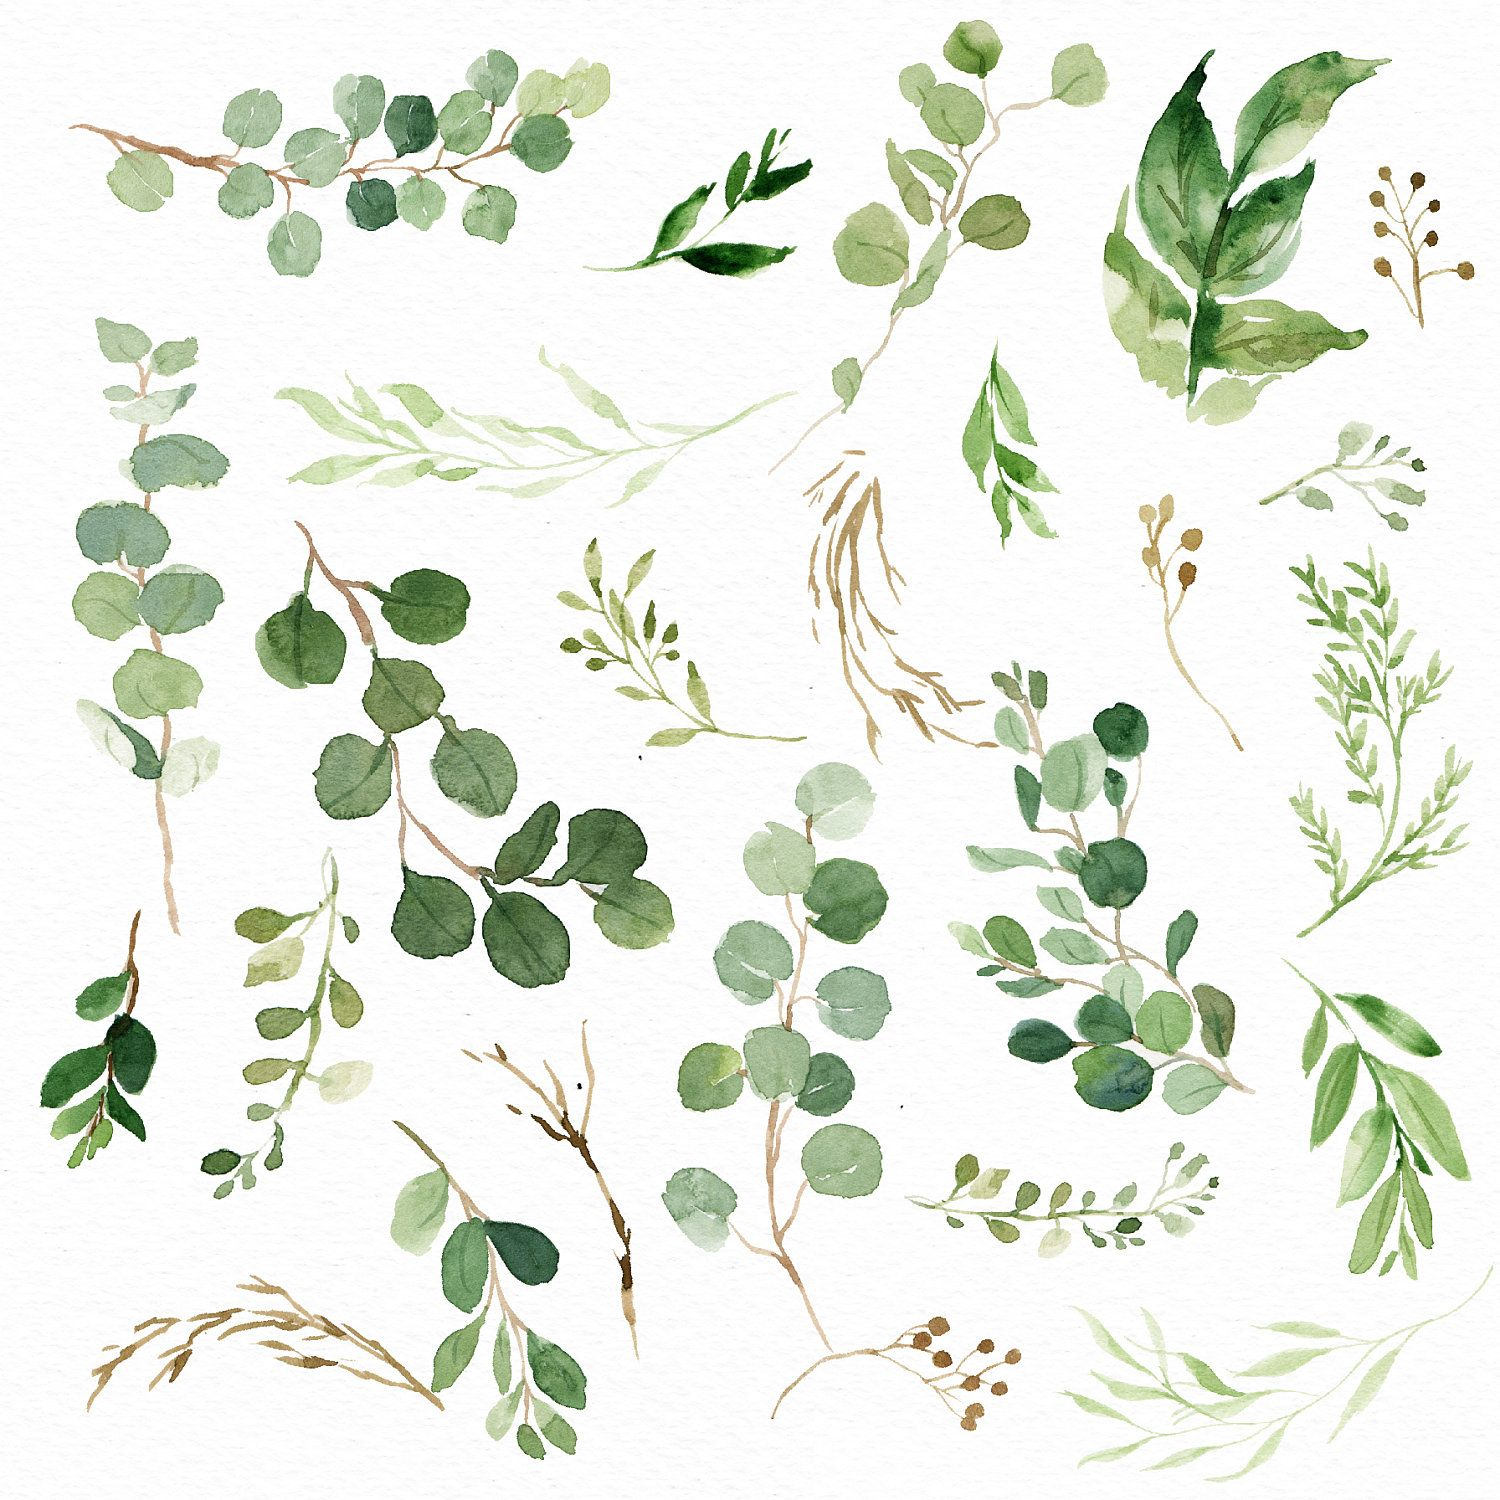 Elements De Feuille Verte A L Aquarelle Petit Ensemble Greenery